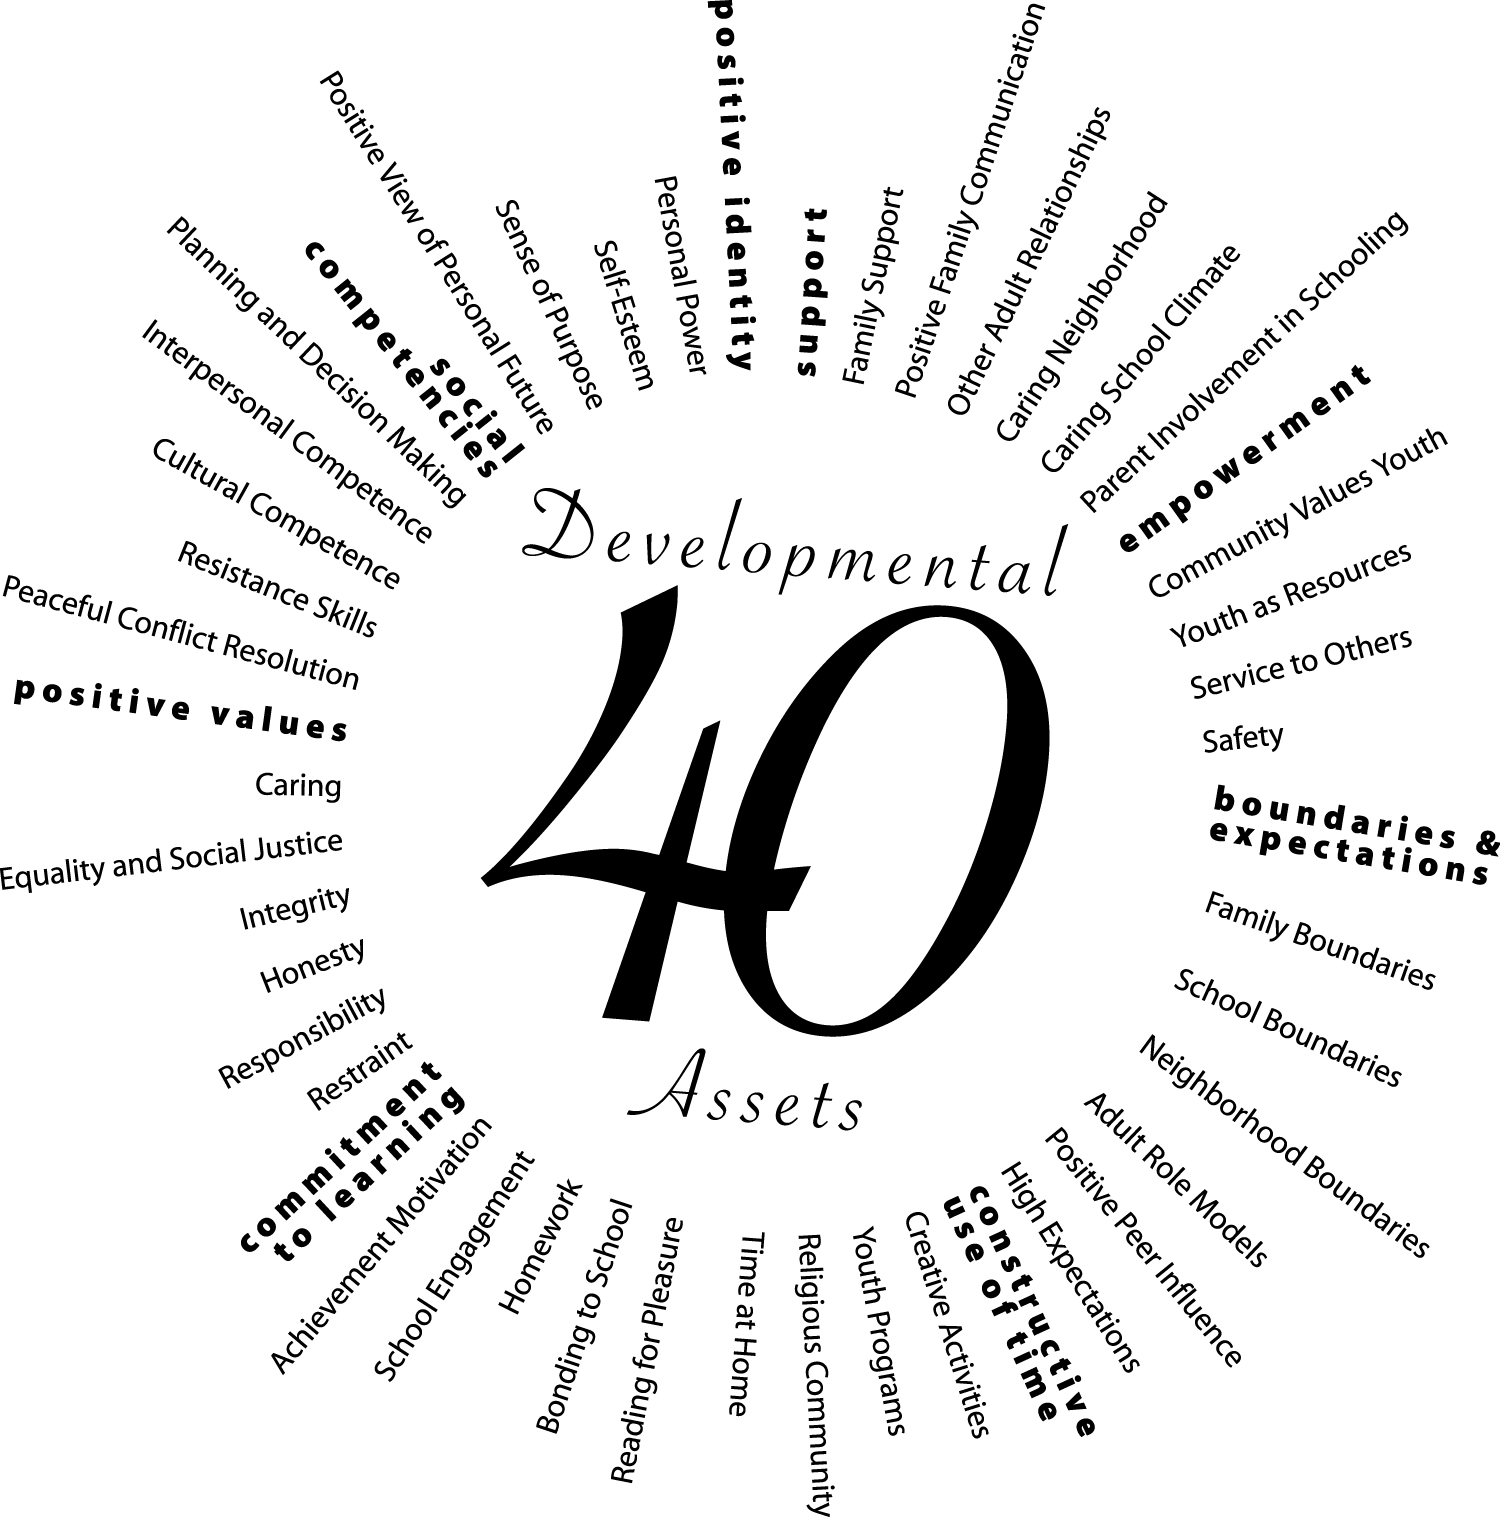 40 Developmental Assets: Youth Worker Cafe